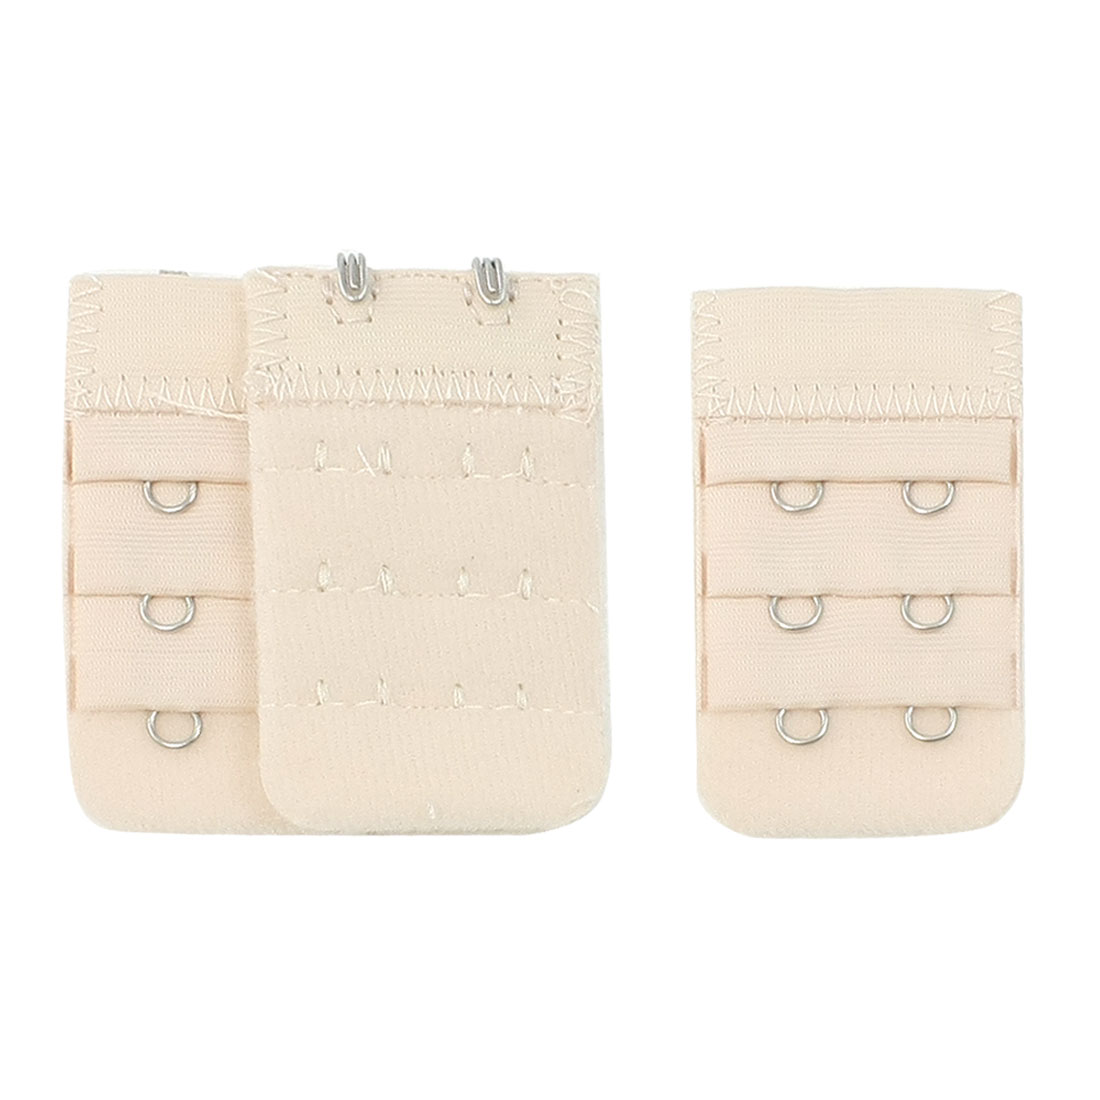 3pcs Women 3 Row 2 Hooks Adjustable Underwear Bra Strap Extender Buckle Hook Khaki Color